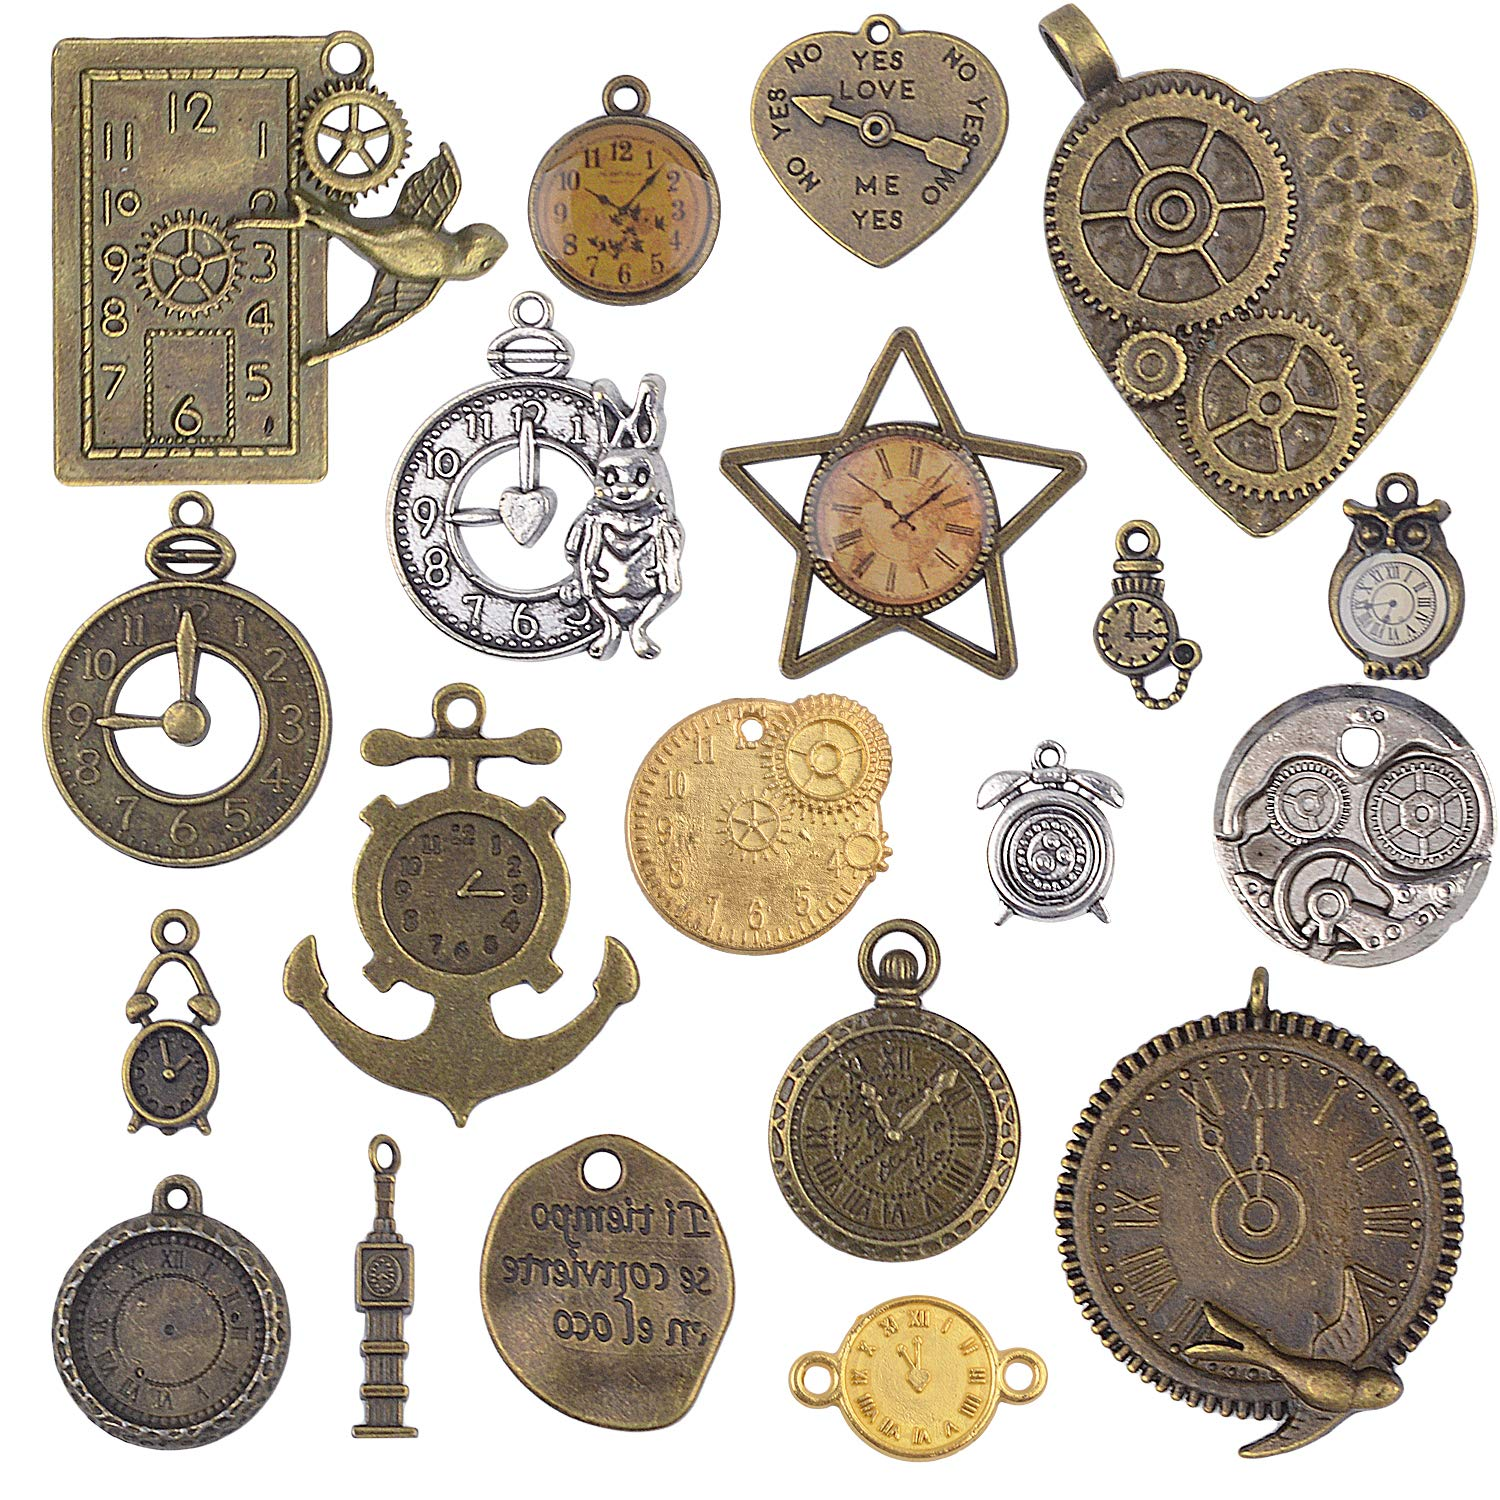 BronaGrand 20pcs Mixed Antiqued Charms Clock Face Charm Pendant, DIY Crafts, Gears, Jewelry Making, Steampunk Pendants,3 Colors